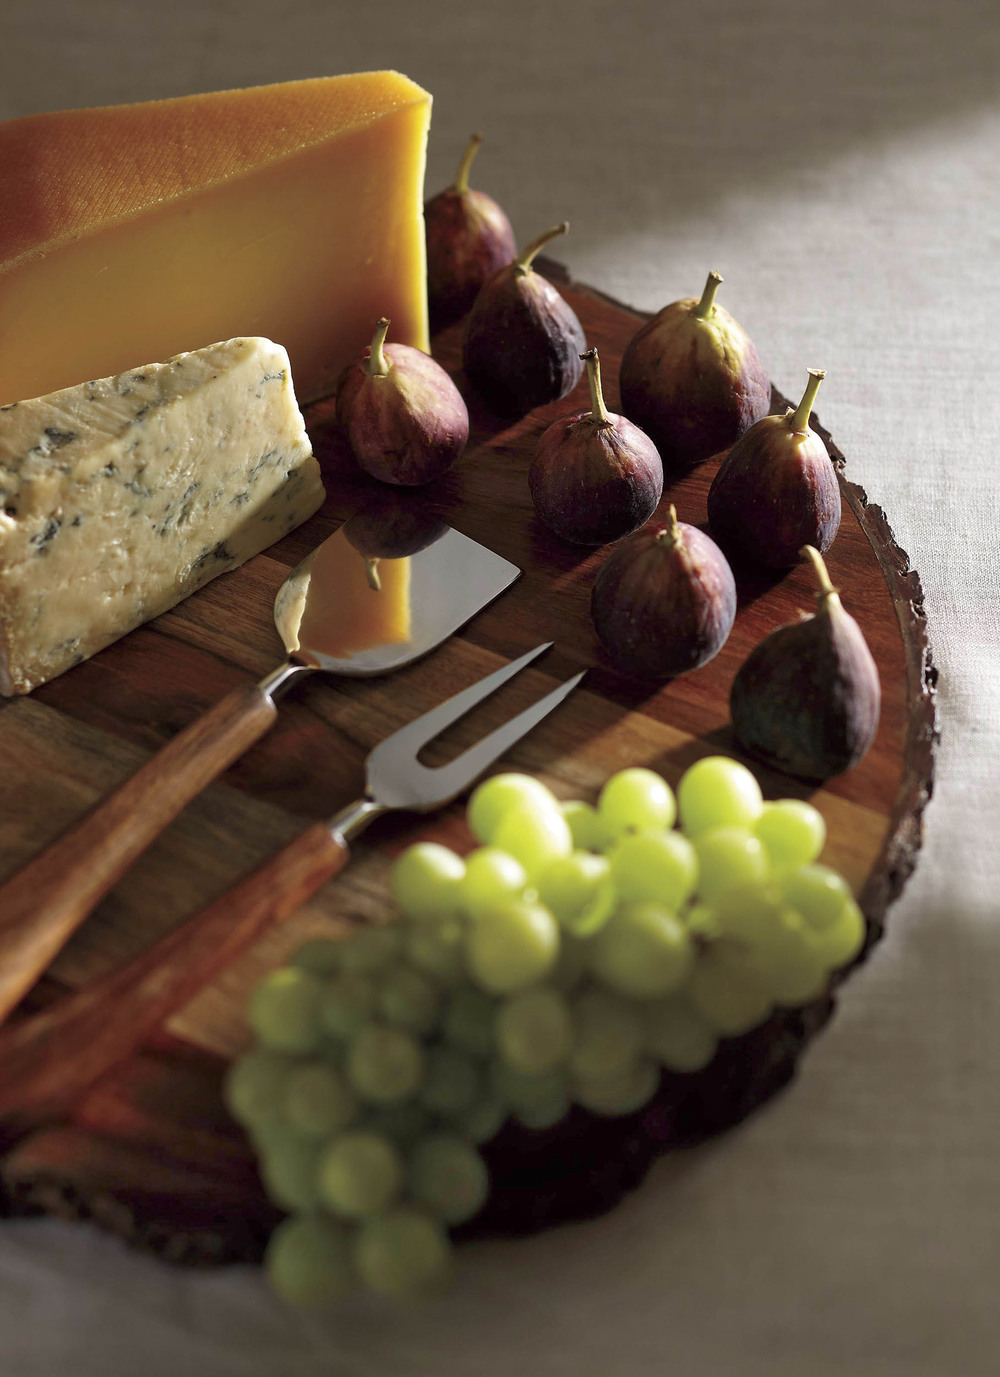 Cheese plate with figs and grapes